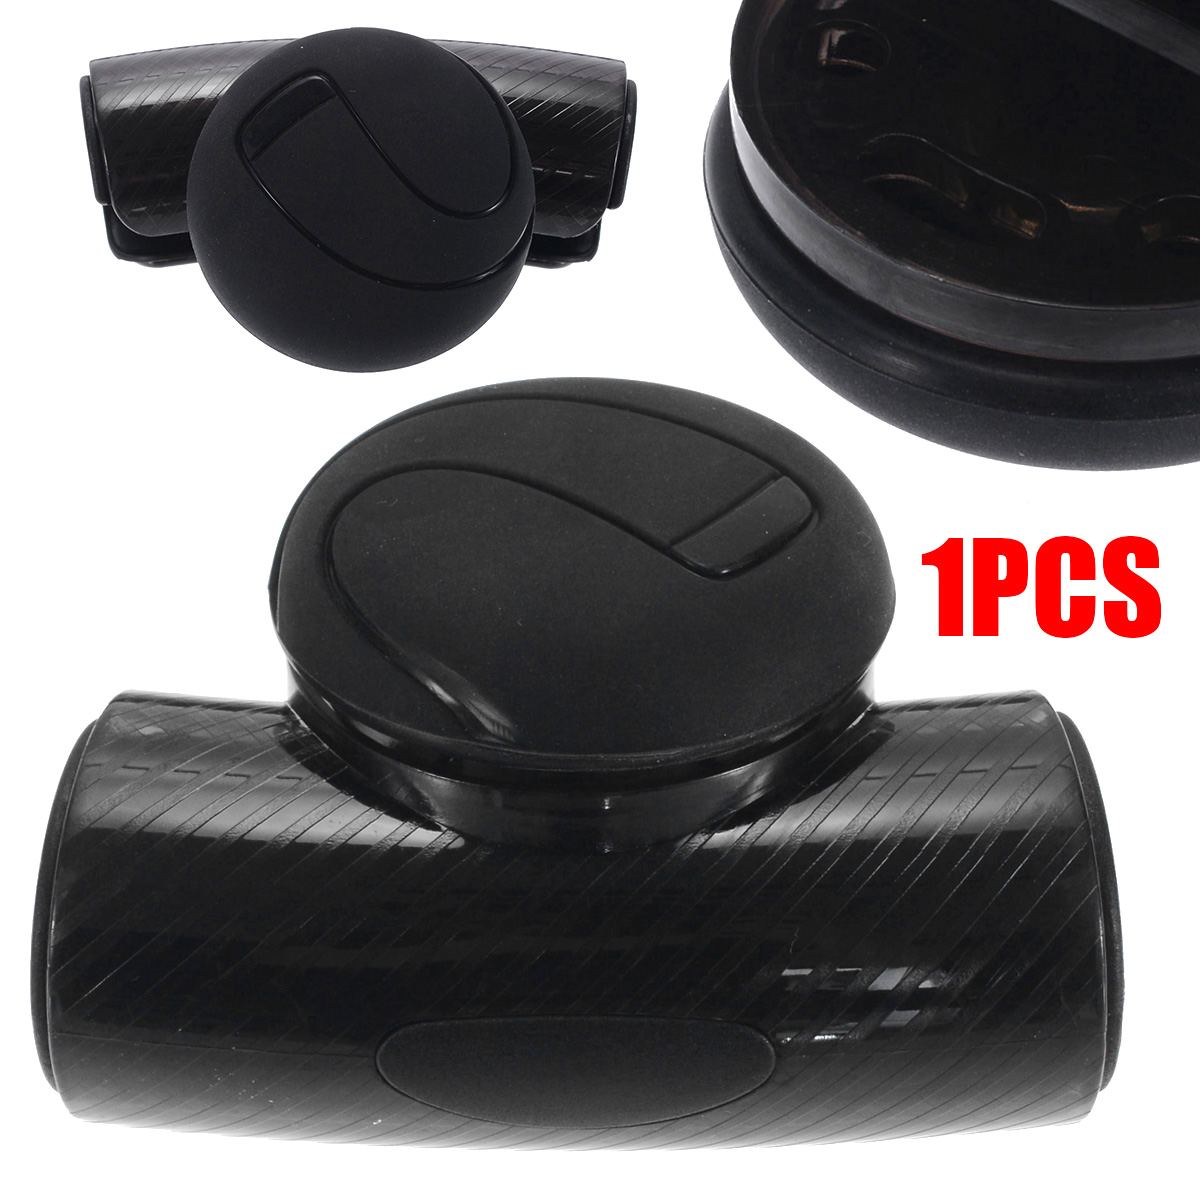 Car Steering Wheel Spinner Knob Auxiliary Booster Aid Control Handle Grip Black Elegant In Smell Automobiles & Motorcycles